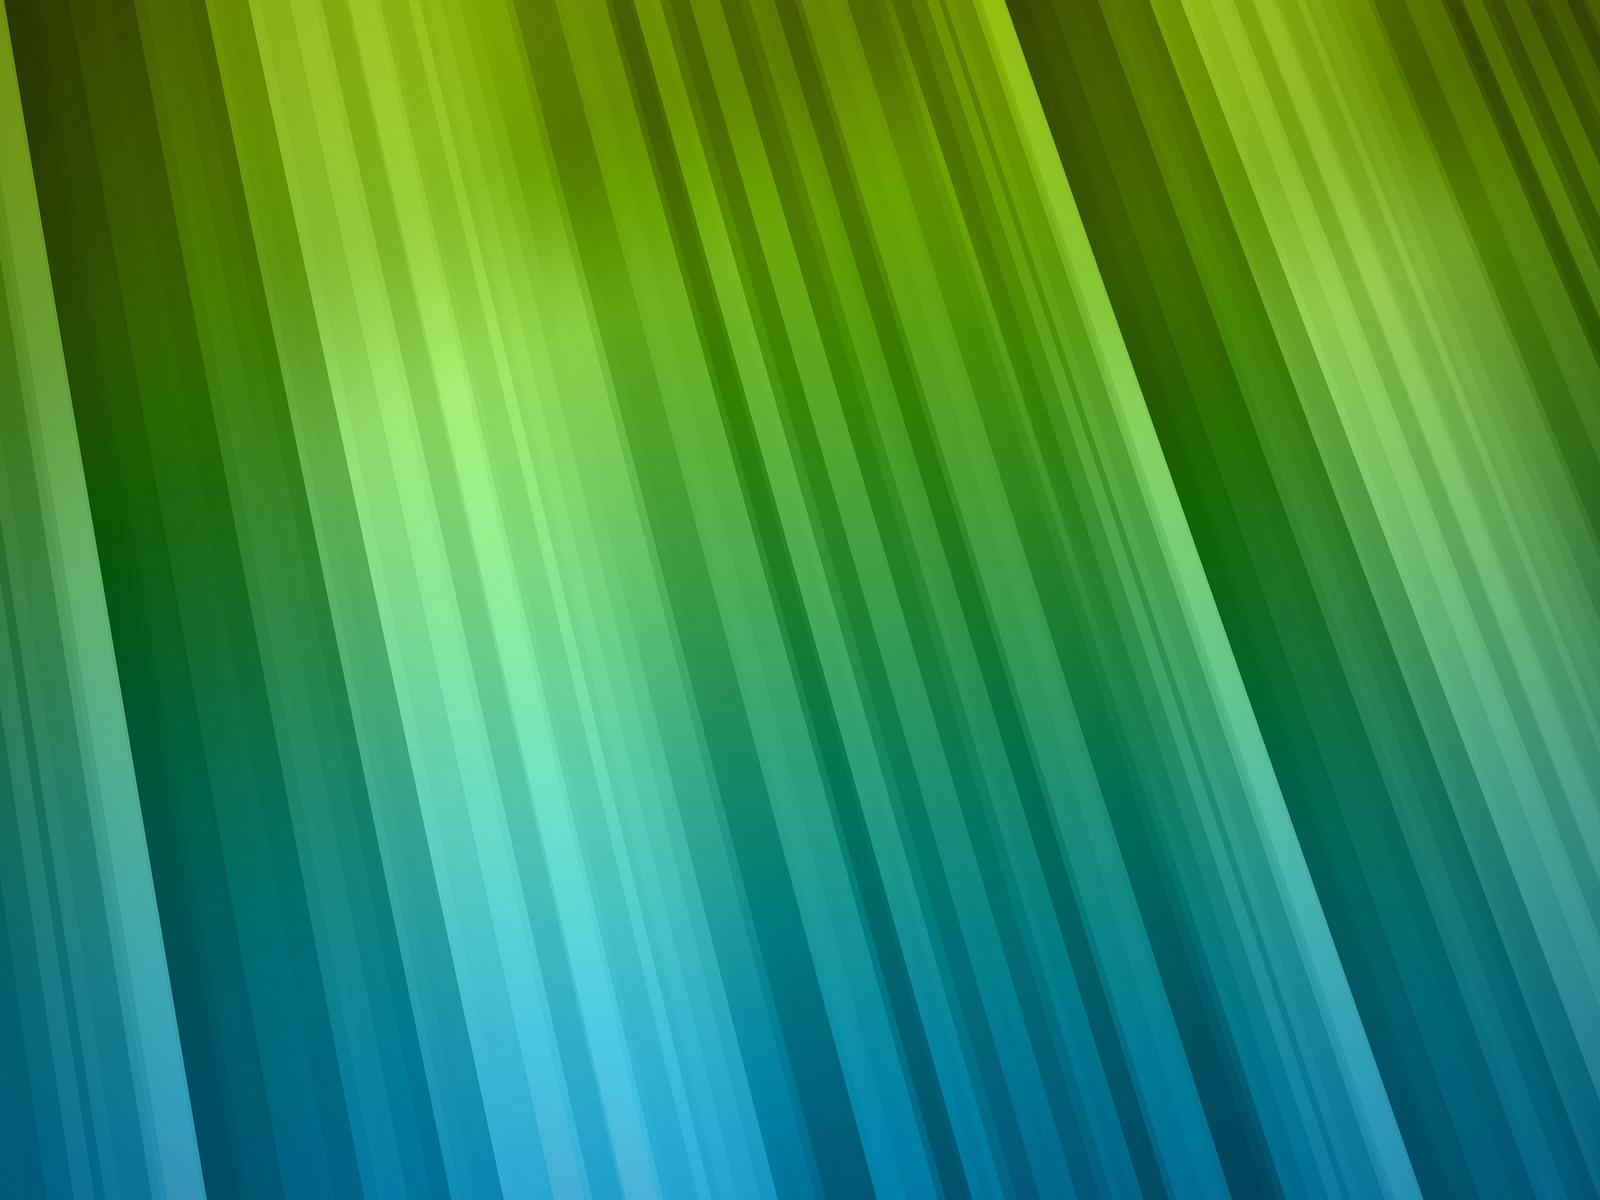 Green And Blue Wallpaper 23886965 1600 1200